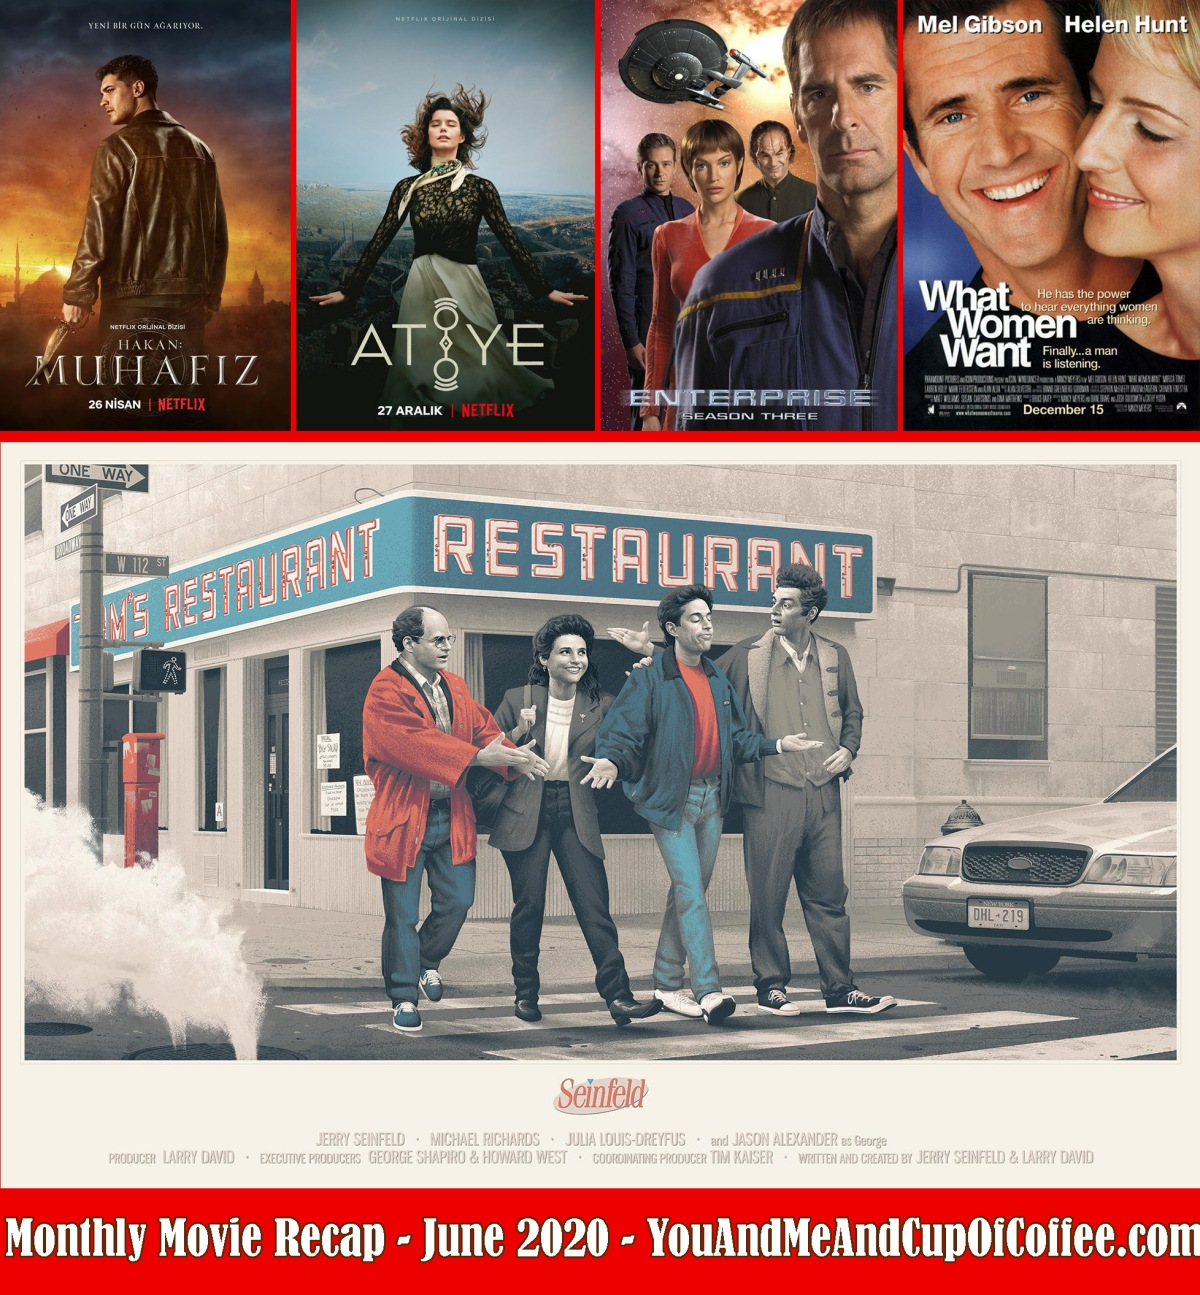 Monthly Movie Recap: June 2020 🎥